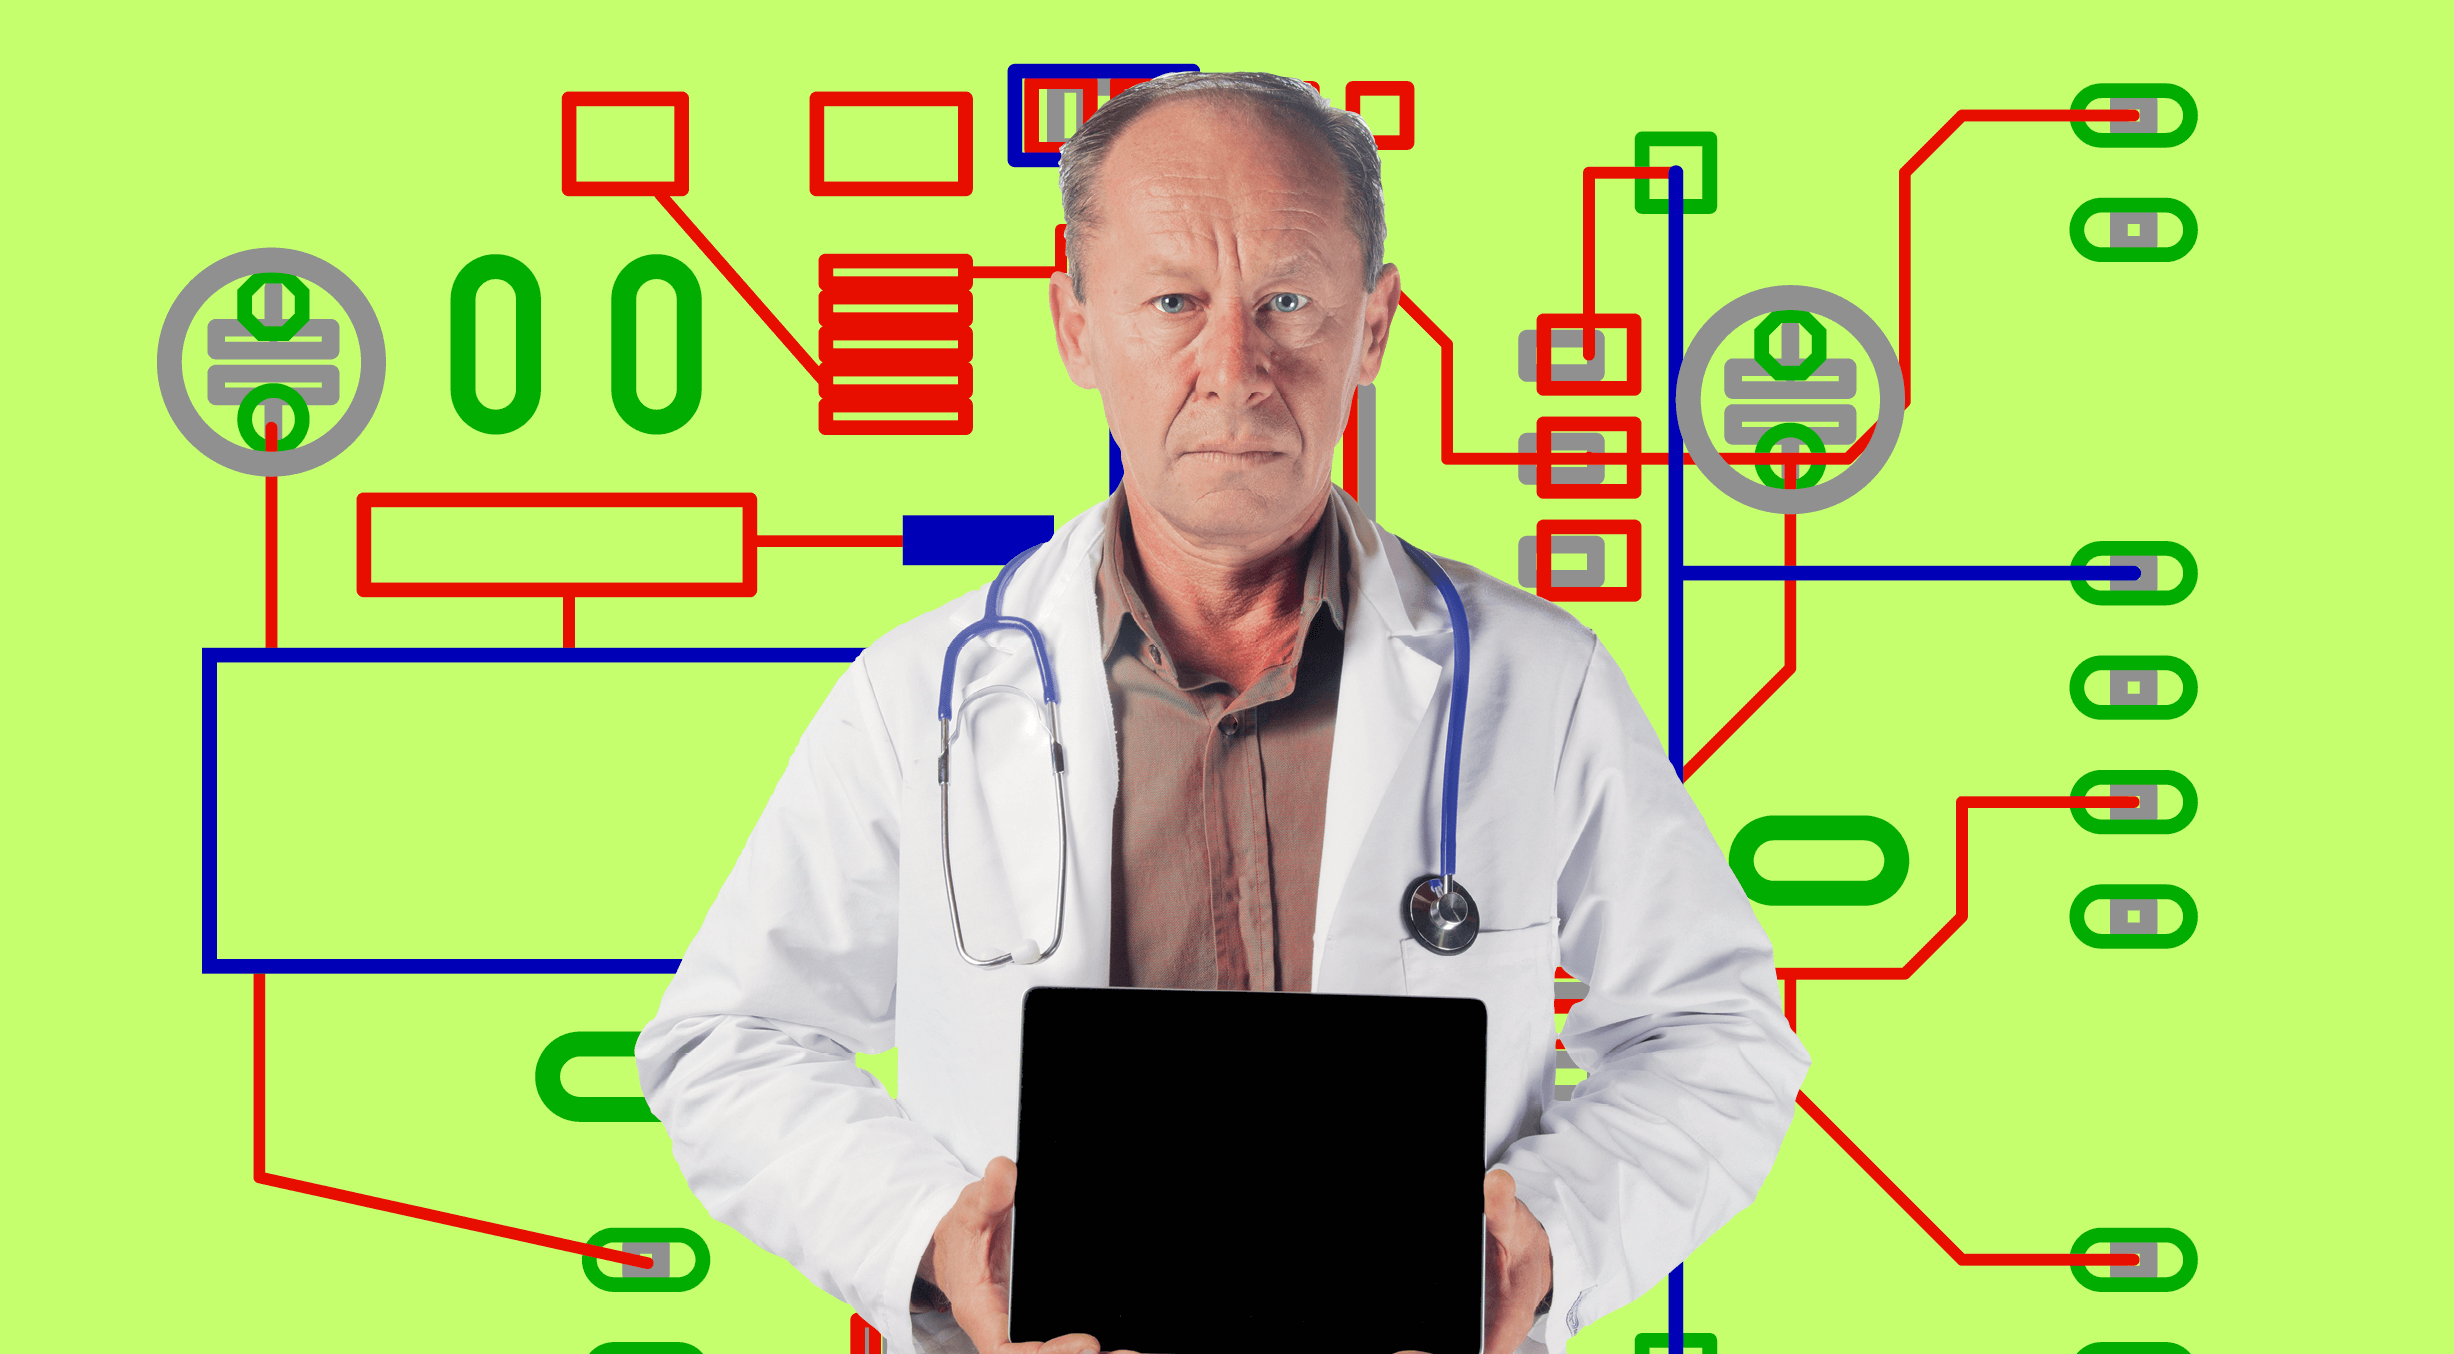 No end in sight: EHRs hit hospitals' bottom lines with uncertain